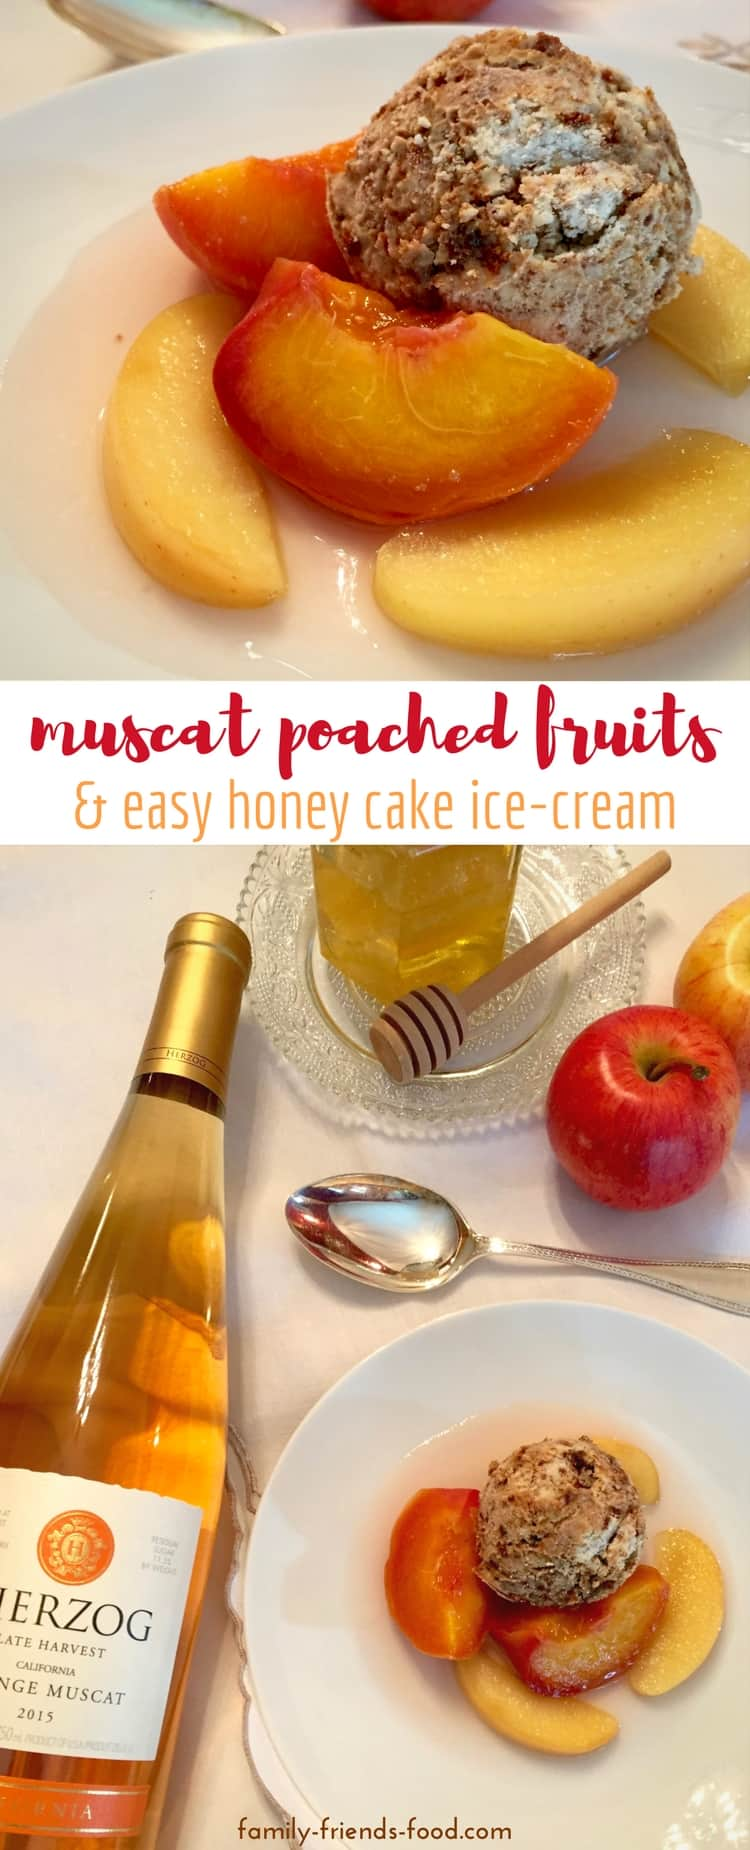 Muscat poached fruits & easy honey cake ice cream (parve) - Poached fruits in a sweet wine syrup, served with easy honey cake ice-cream, make a perfect sweet & light dessert after a festive family meal. Shana Tova!